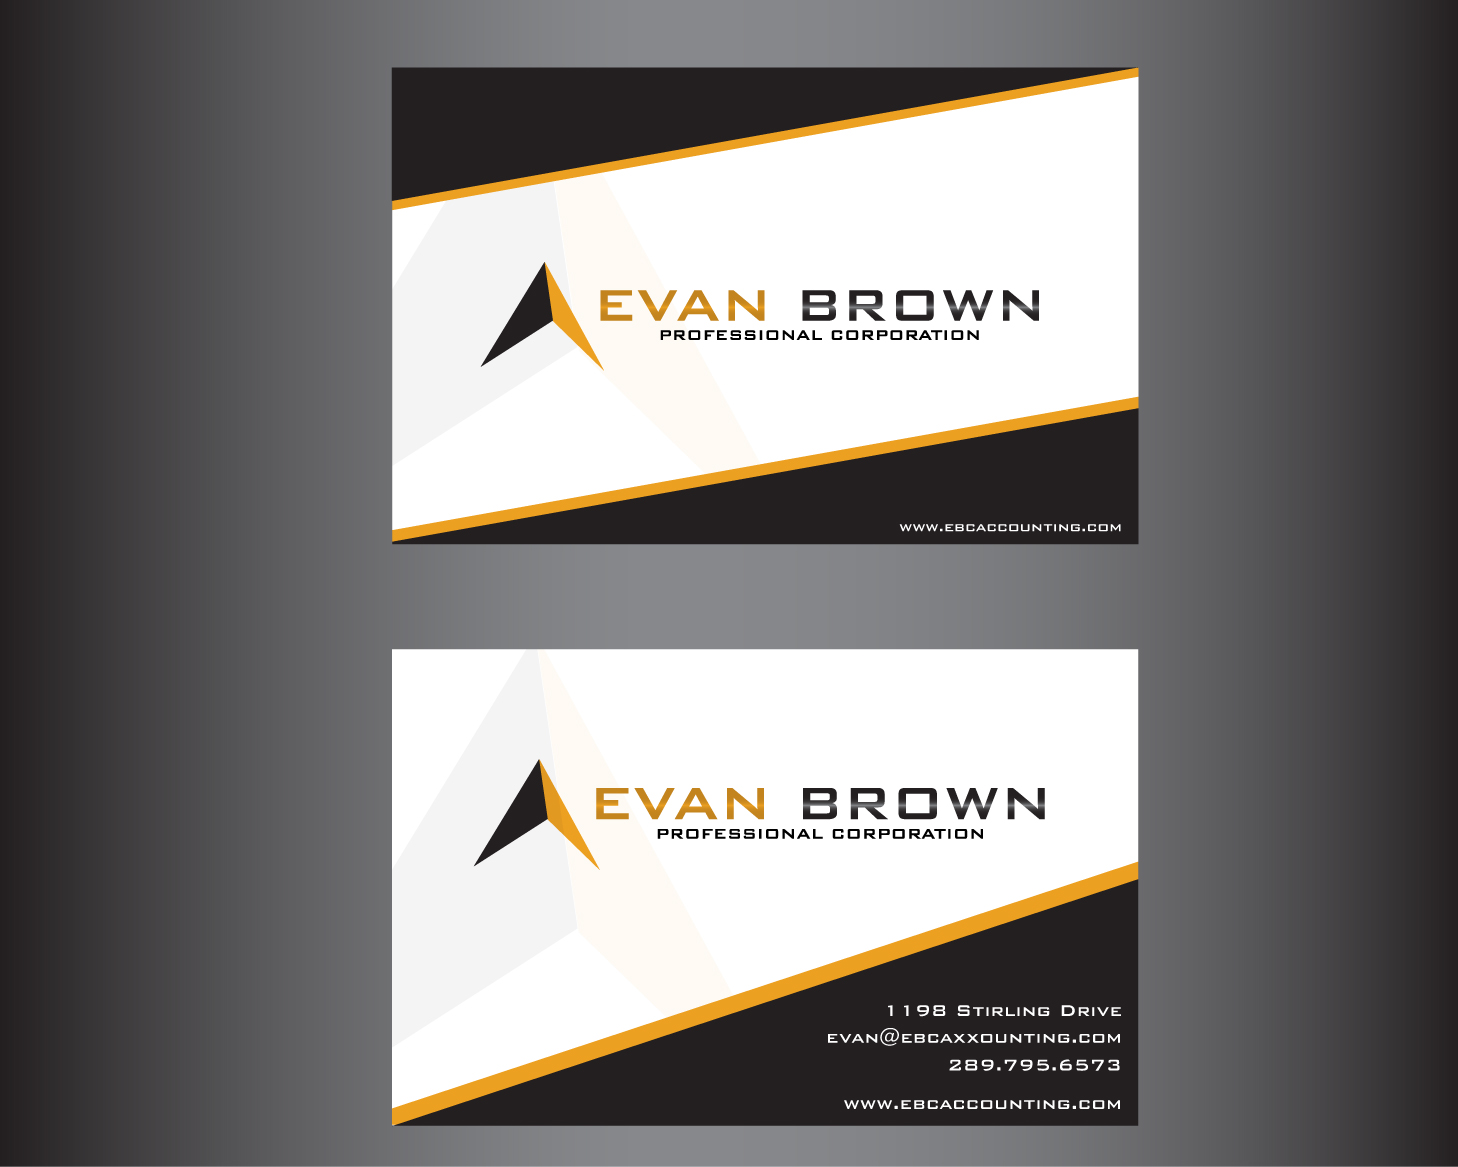 Logo Design by rA - Entry No. 216 in the Logo Design Contest Inspiring Logo Design for Evan Brown Professional Corporation.